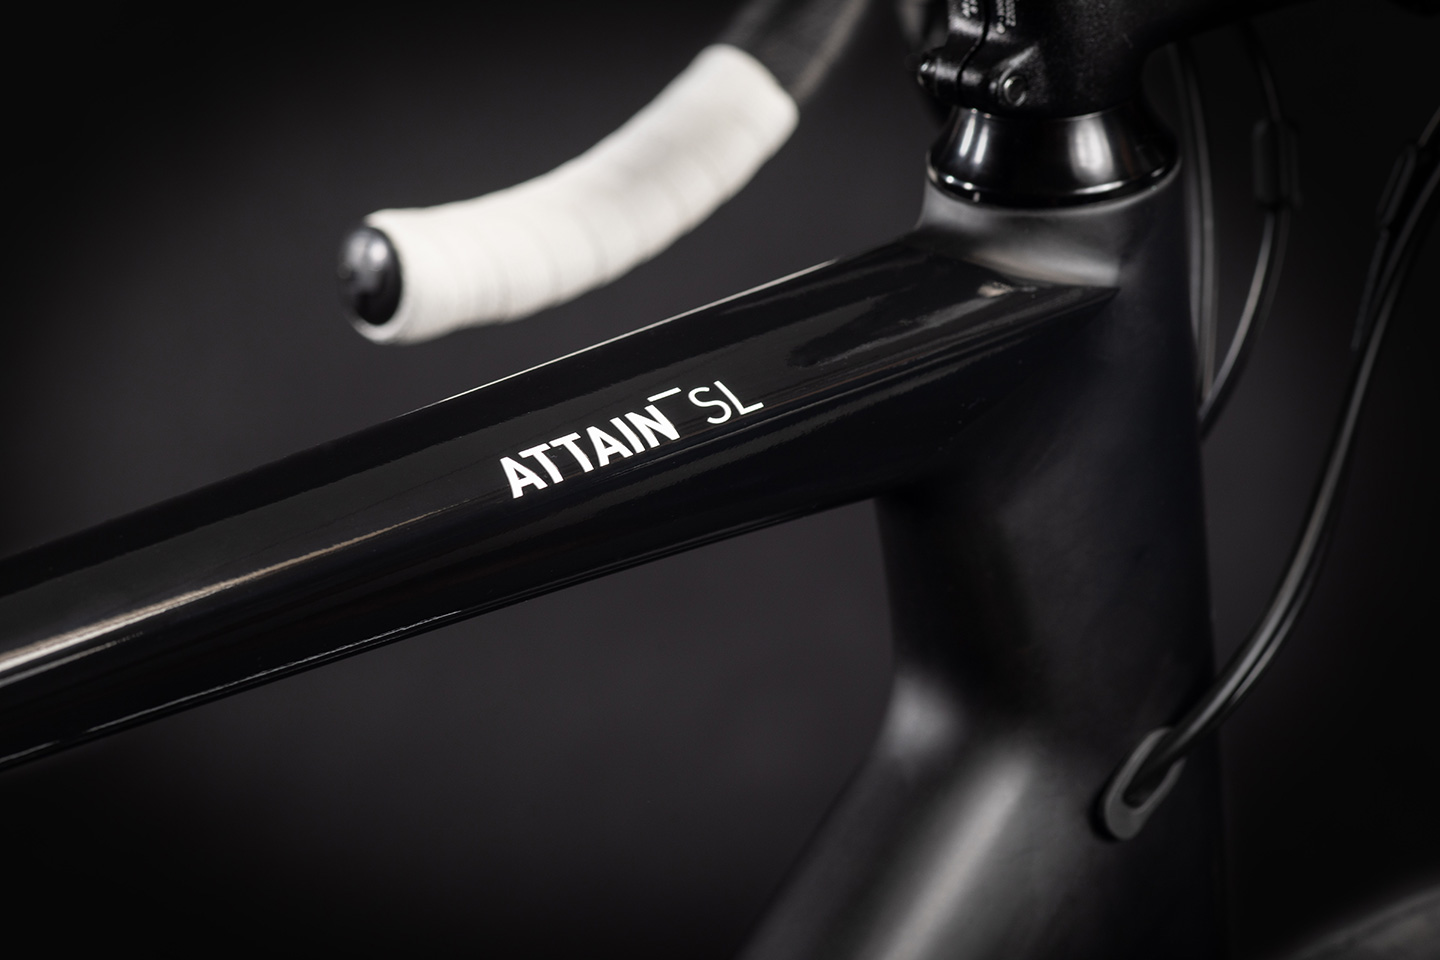 ATTAIN GTC SL